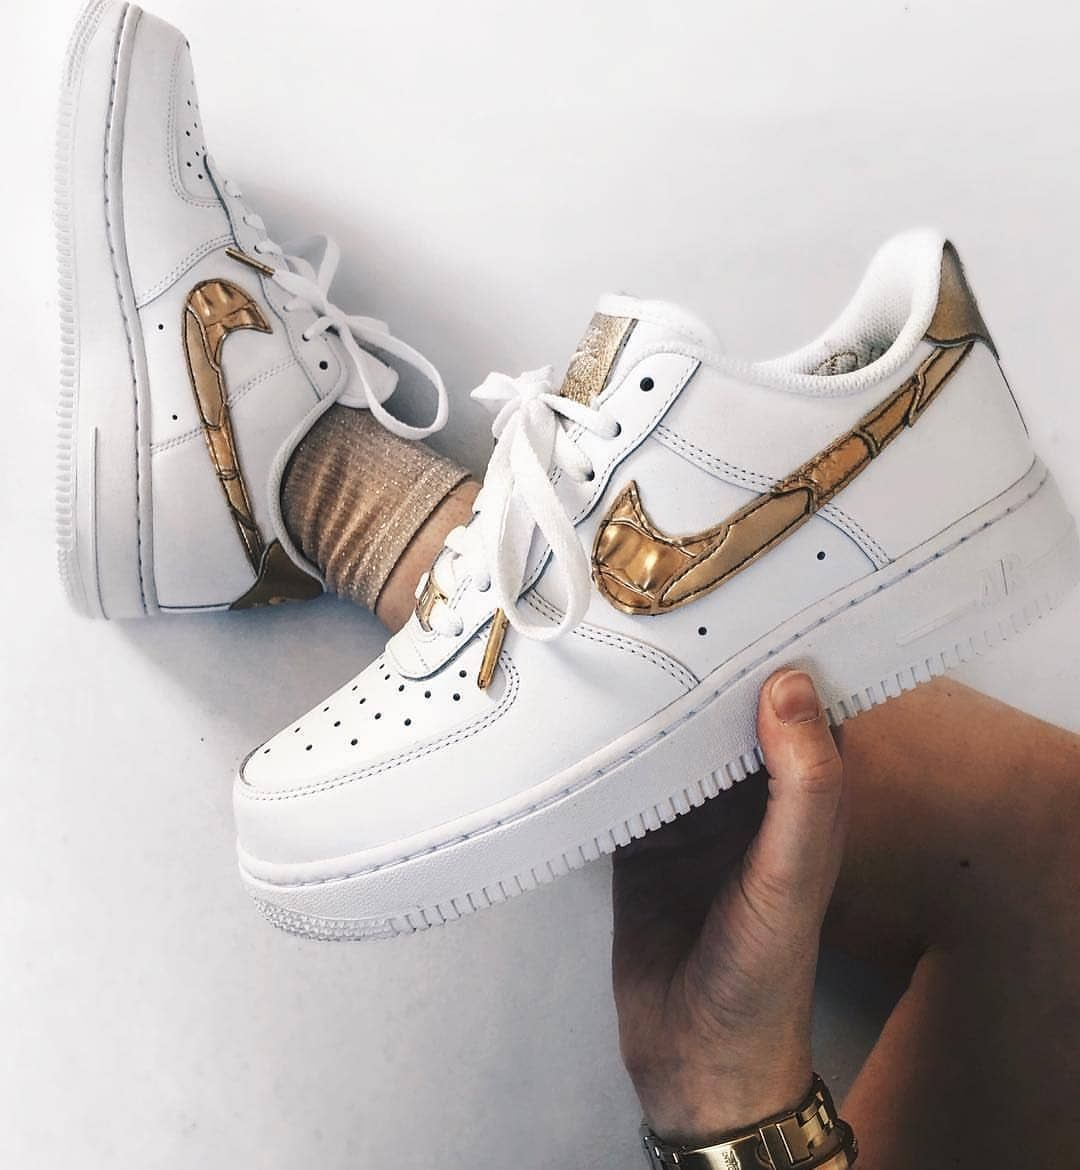 Yay or nay ?  #airforce1 . . . . #shoes #shoe #kicks #instashoes #instakicks #sn..., #* #airforce1 #igsneakercommunity #instakicks #instashoes #kicks #nicekicks #nike #peepmysneaks #shoe #shoeporn #shoes #sneaker #sneakerfiend #sneakerfreak #sneakerhead #sneakerheads #sneakerholics #sneakerporn #sneakers #solecollector #soleonfire #walklikeus